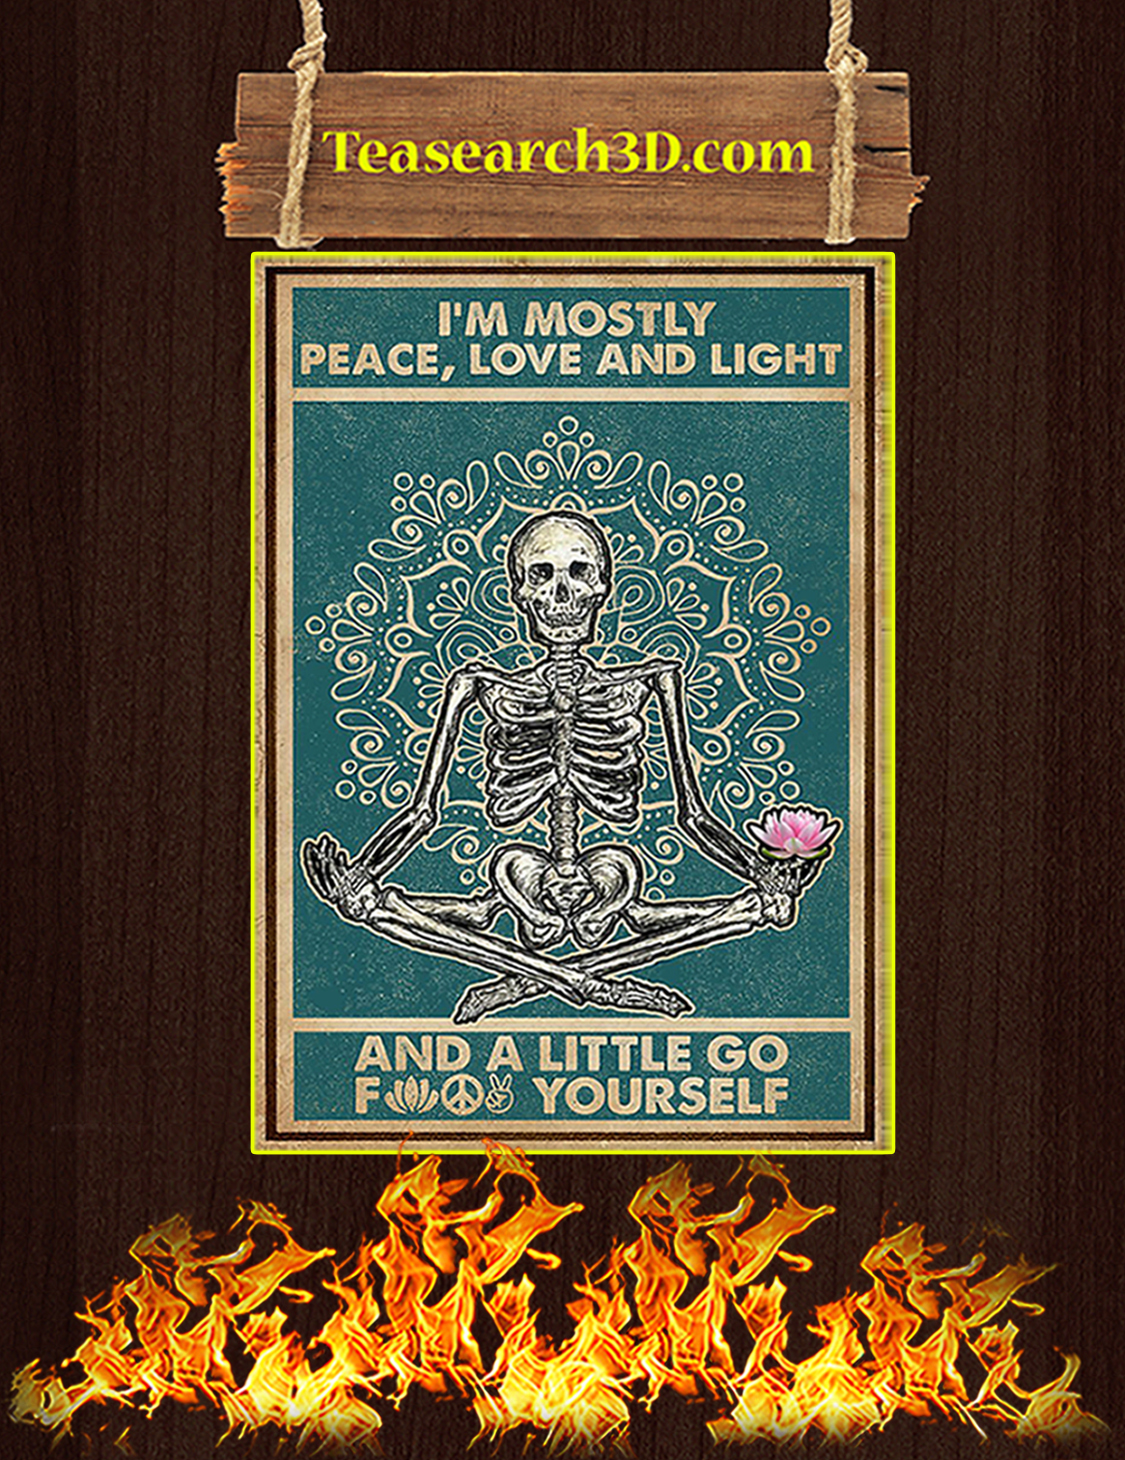 Skeleton yoga I'm mostly peace love and light poster A3